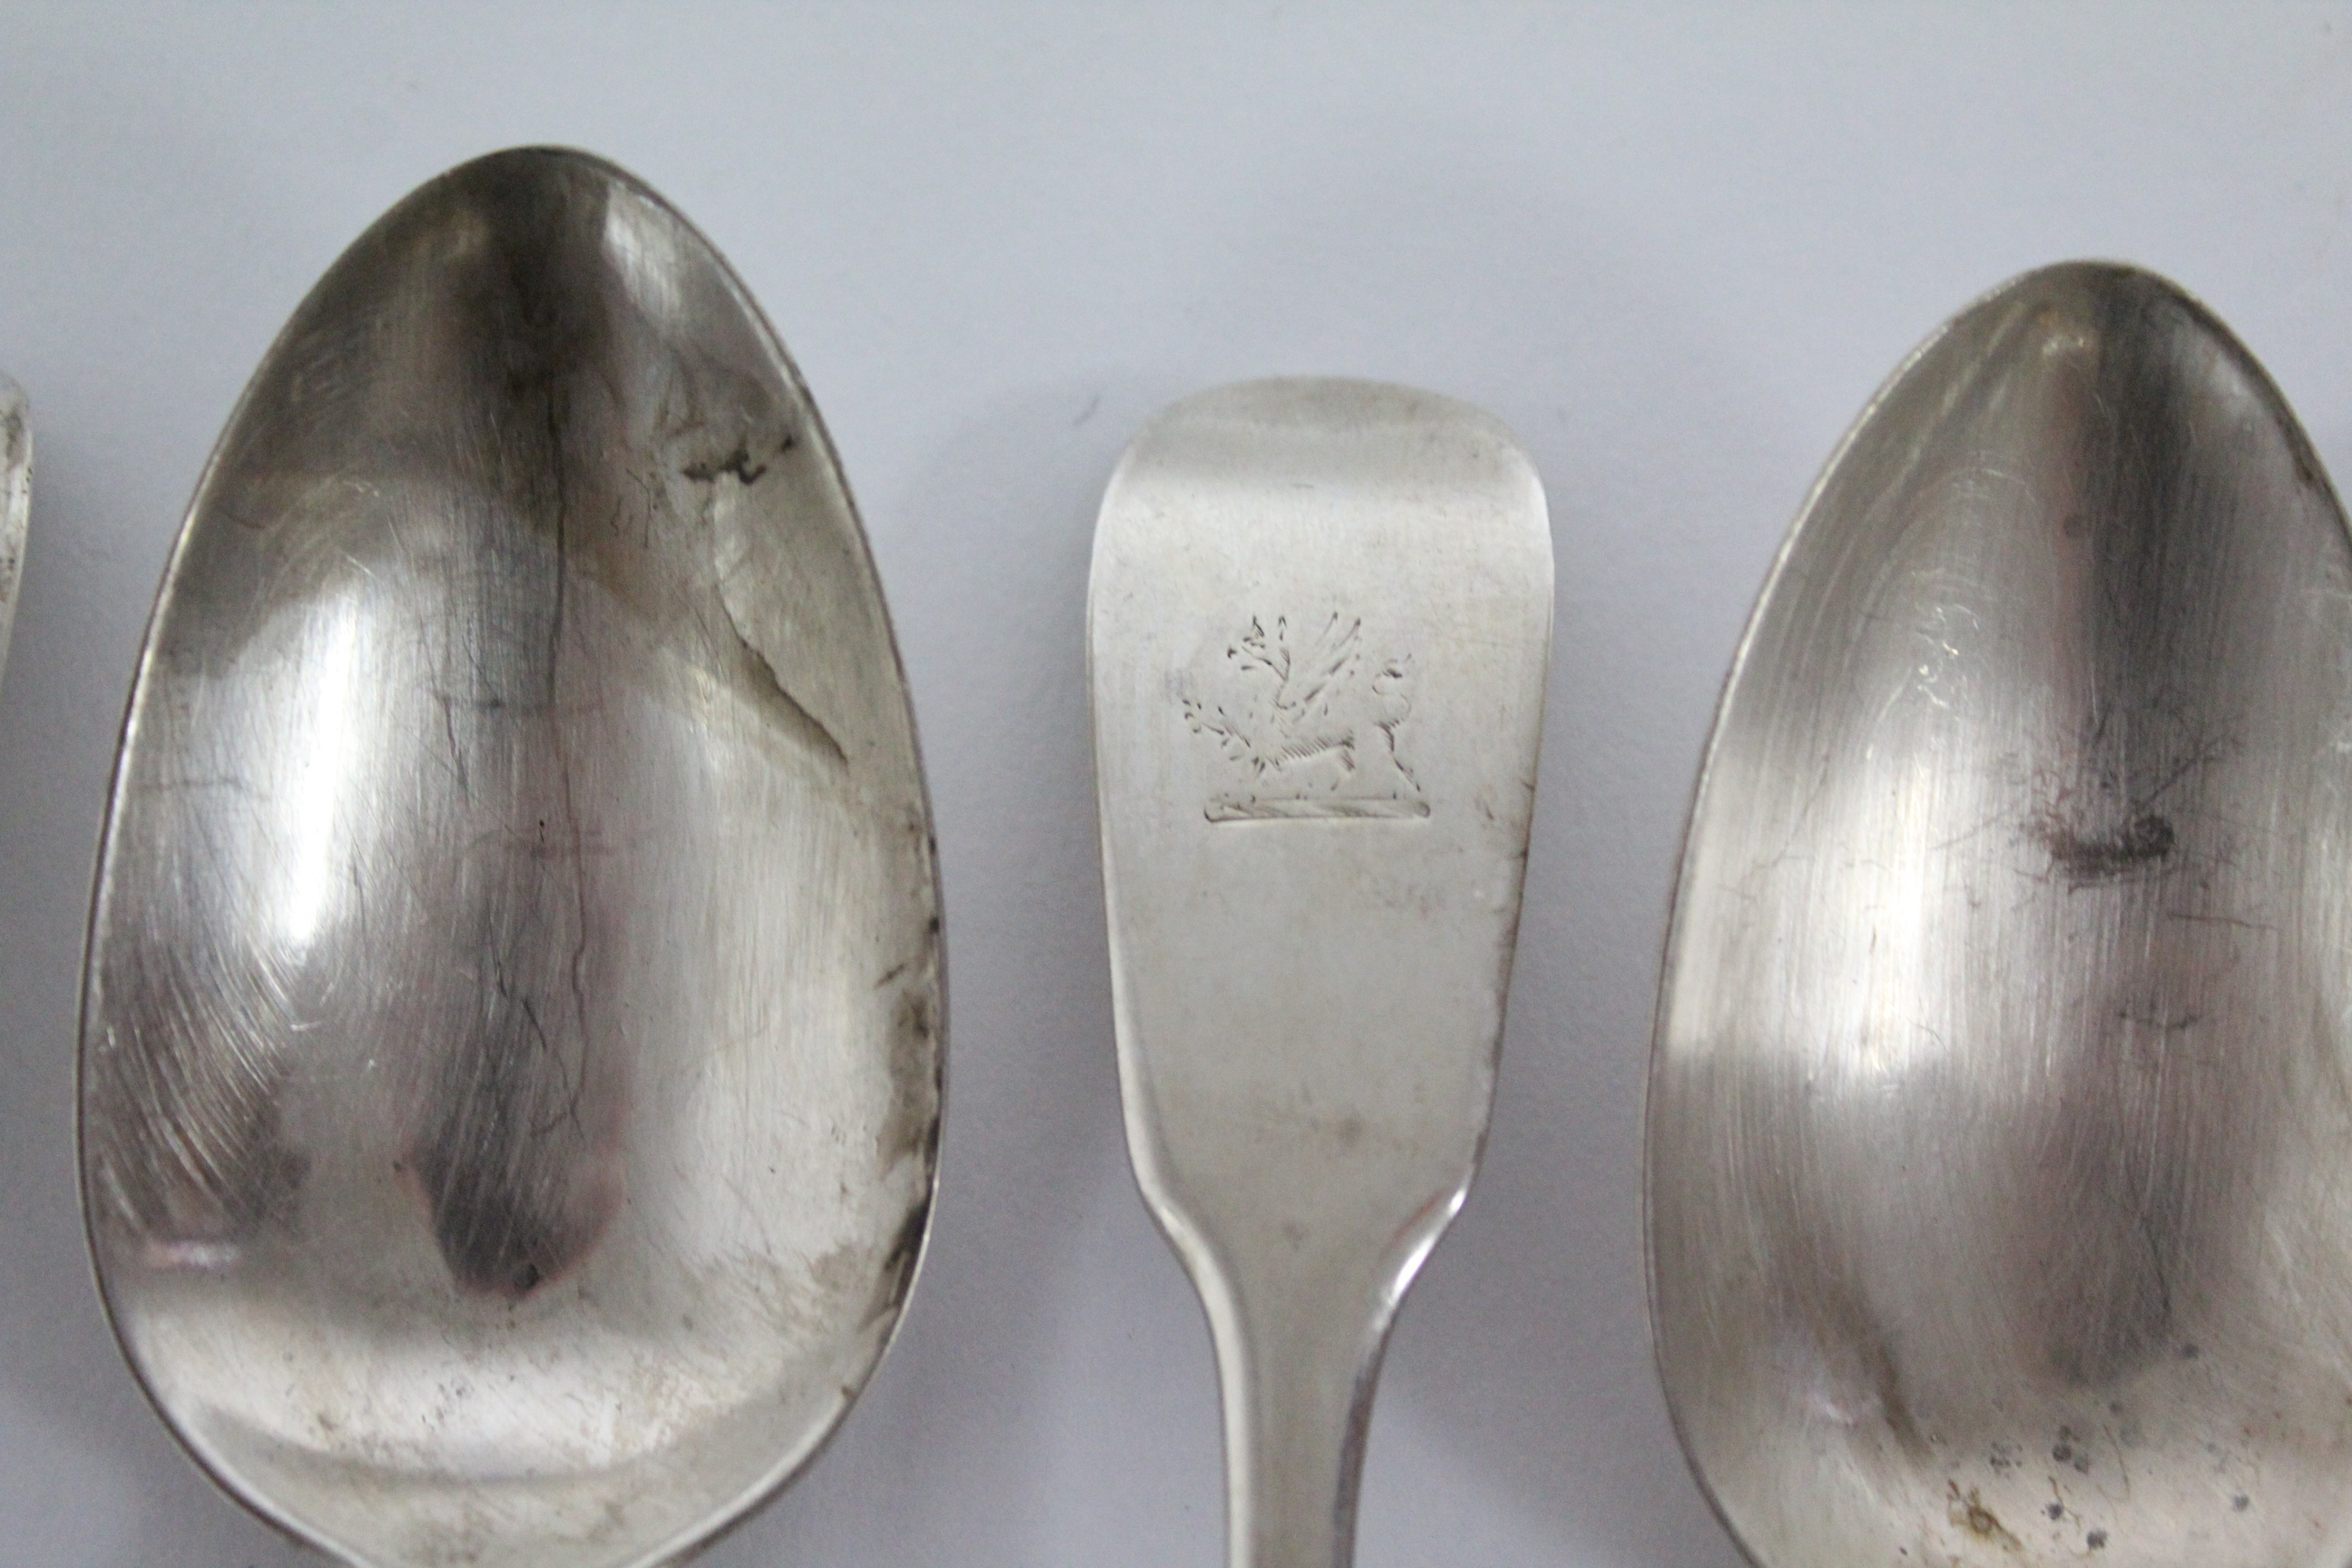 Six William IV Fiddle pattern dessert spoons, London 1831 by William Chawner II. (8½ oz). - Image 2 of 3